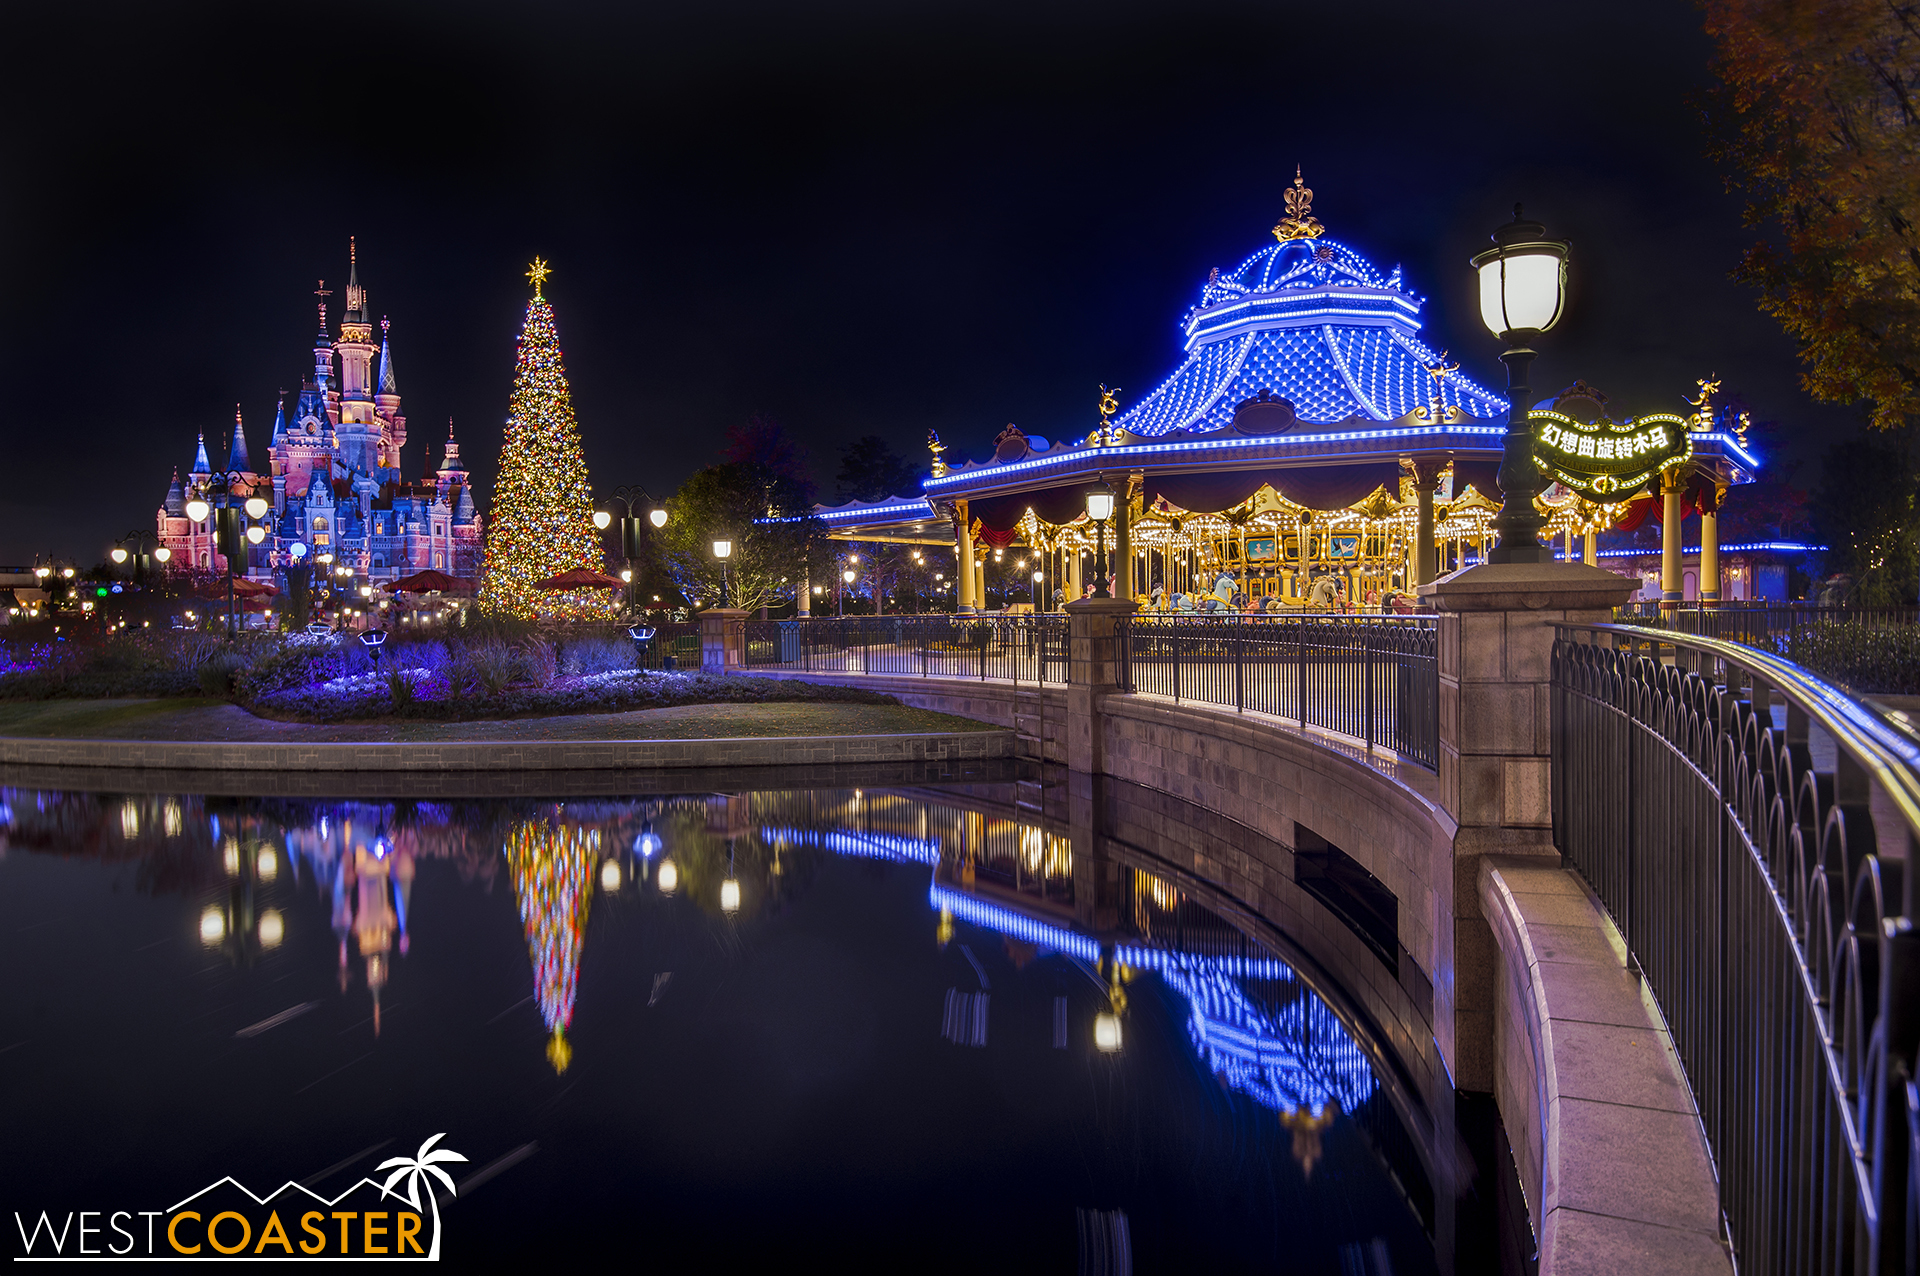 Also a Fantasia Carousel, seen here during Christmas time.